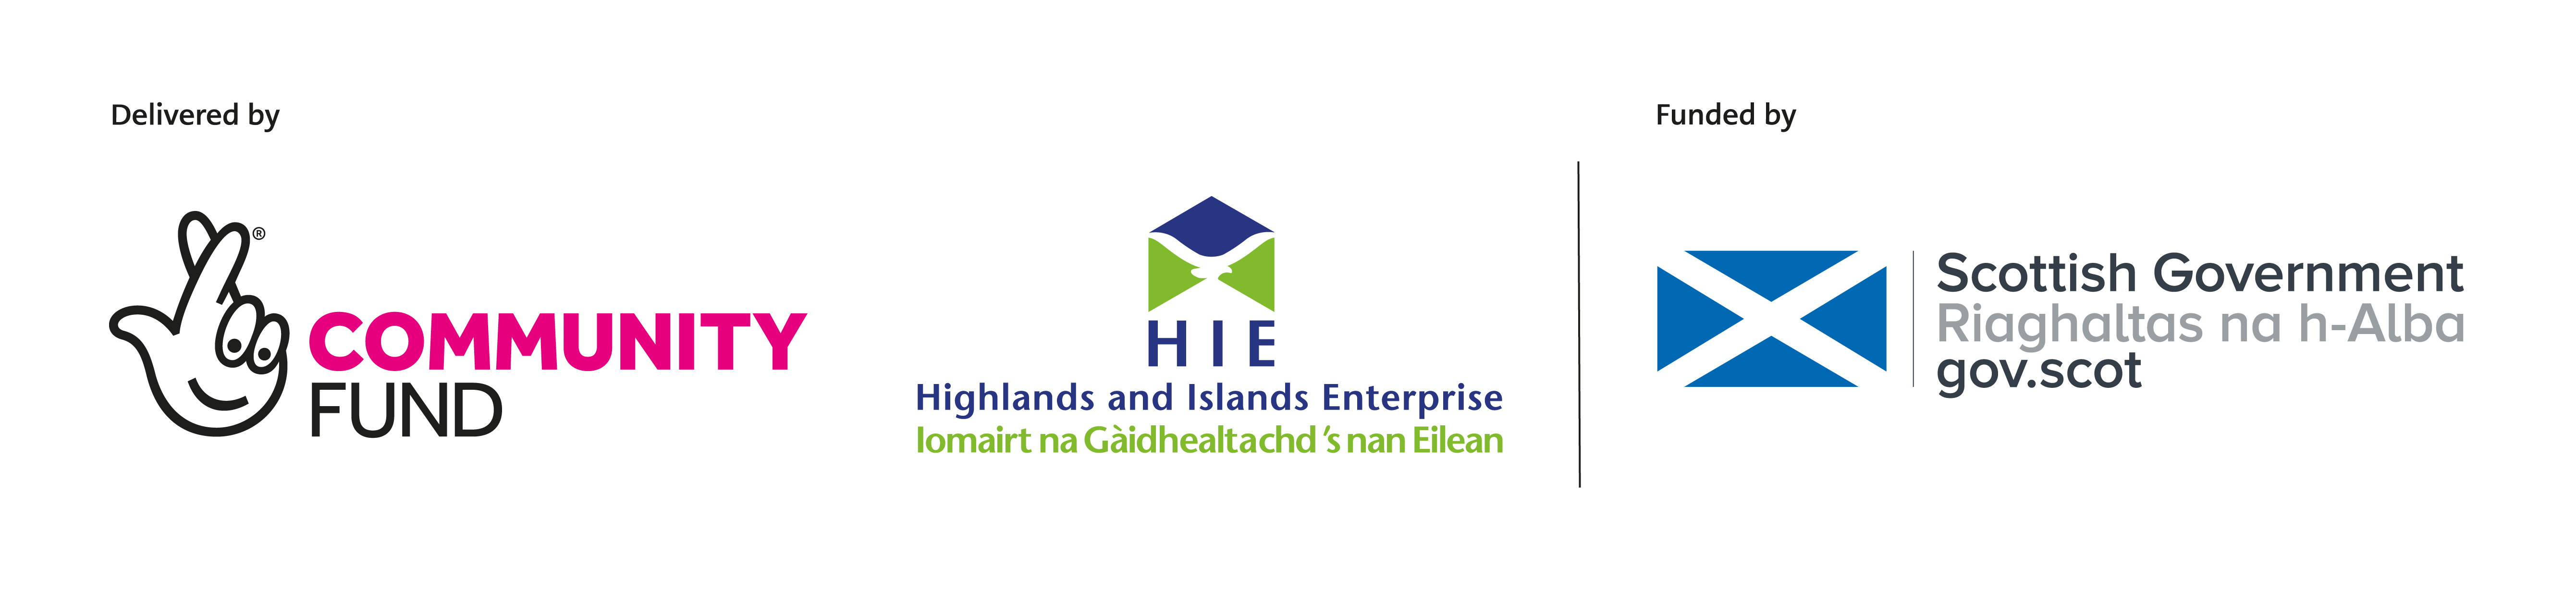 Delivered by The National Lottery Community Fund, Highlands and Islands Enterprise and funded by Scottish Government